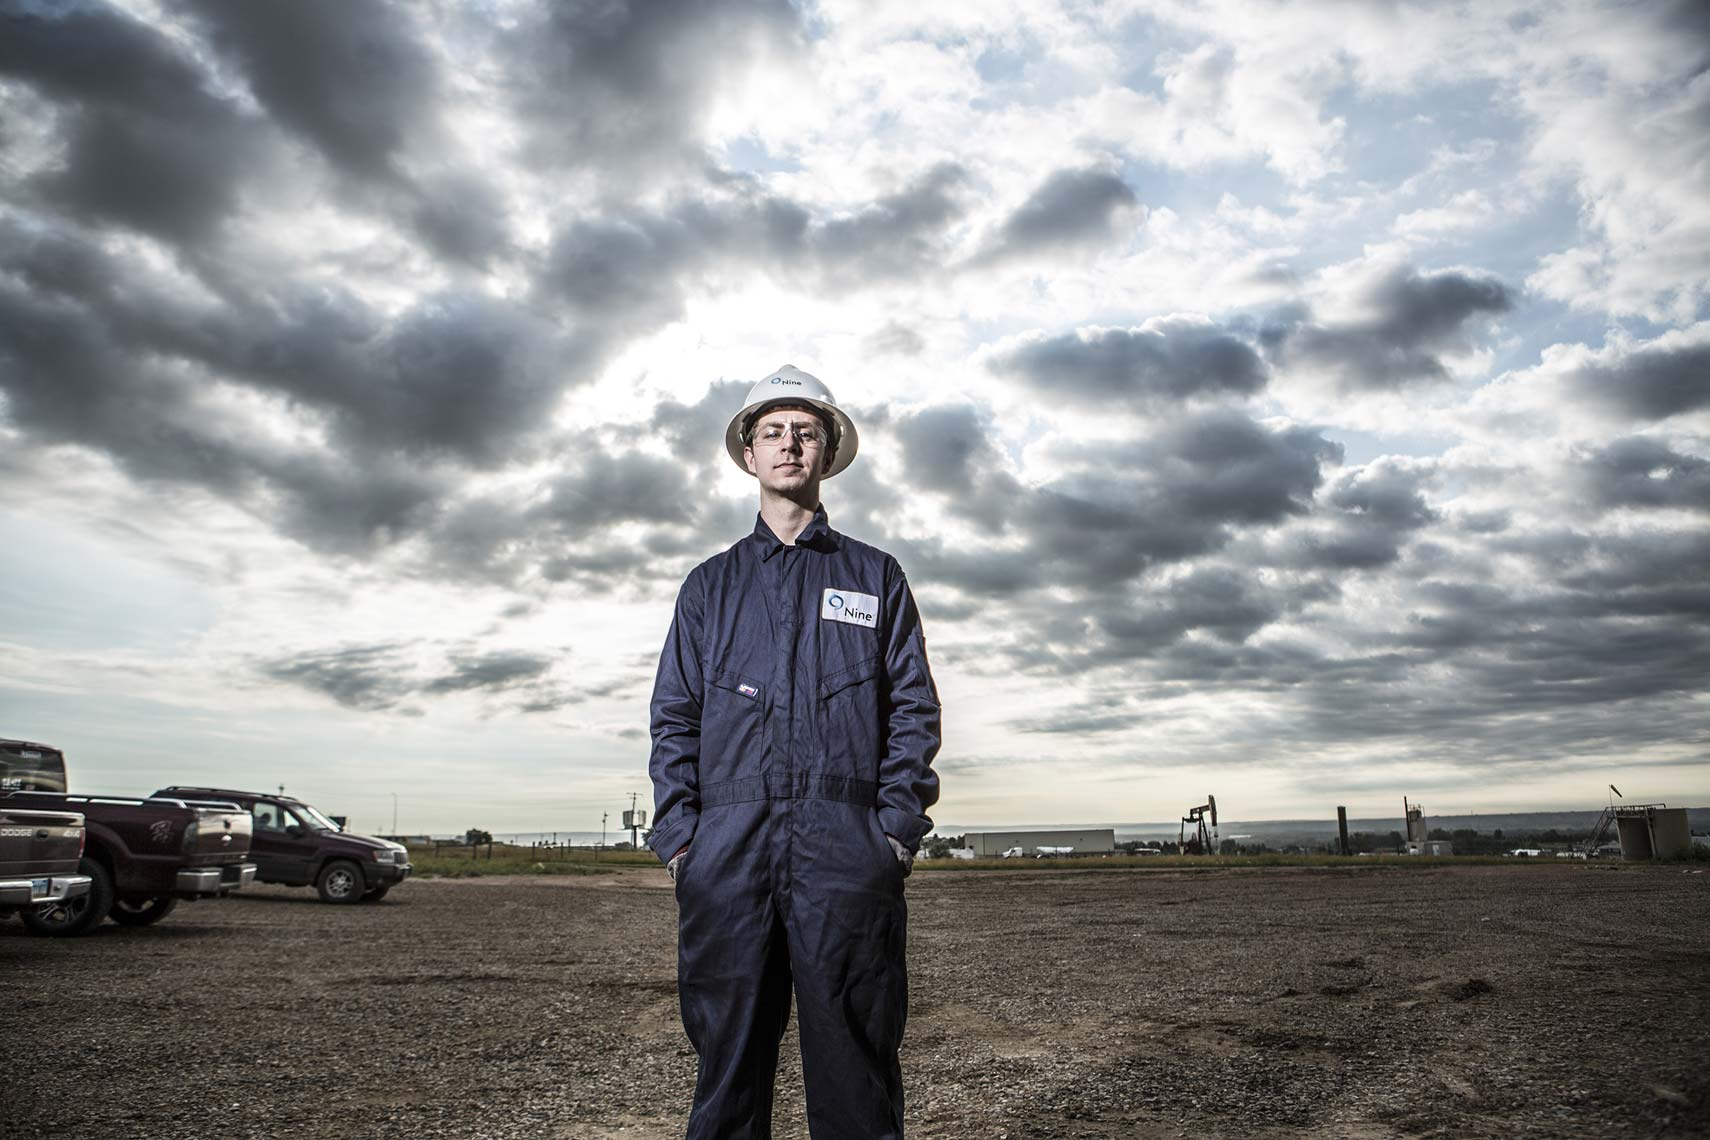 Oil & Gas Industrial Photographer Houston | Felix Sanchez